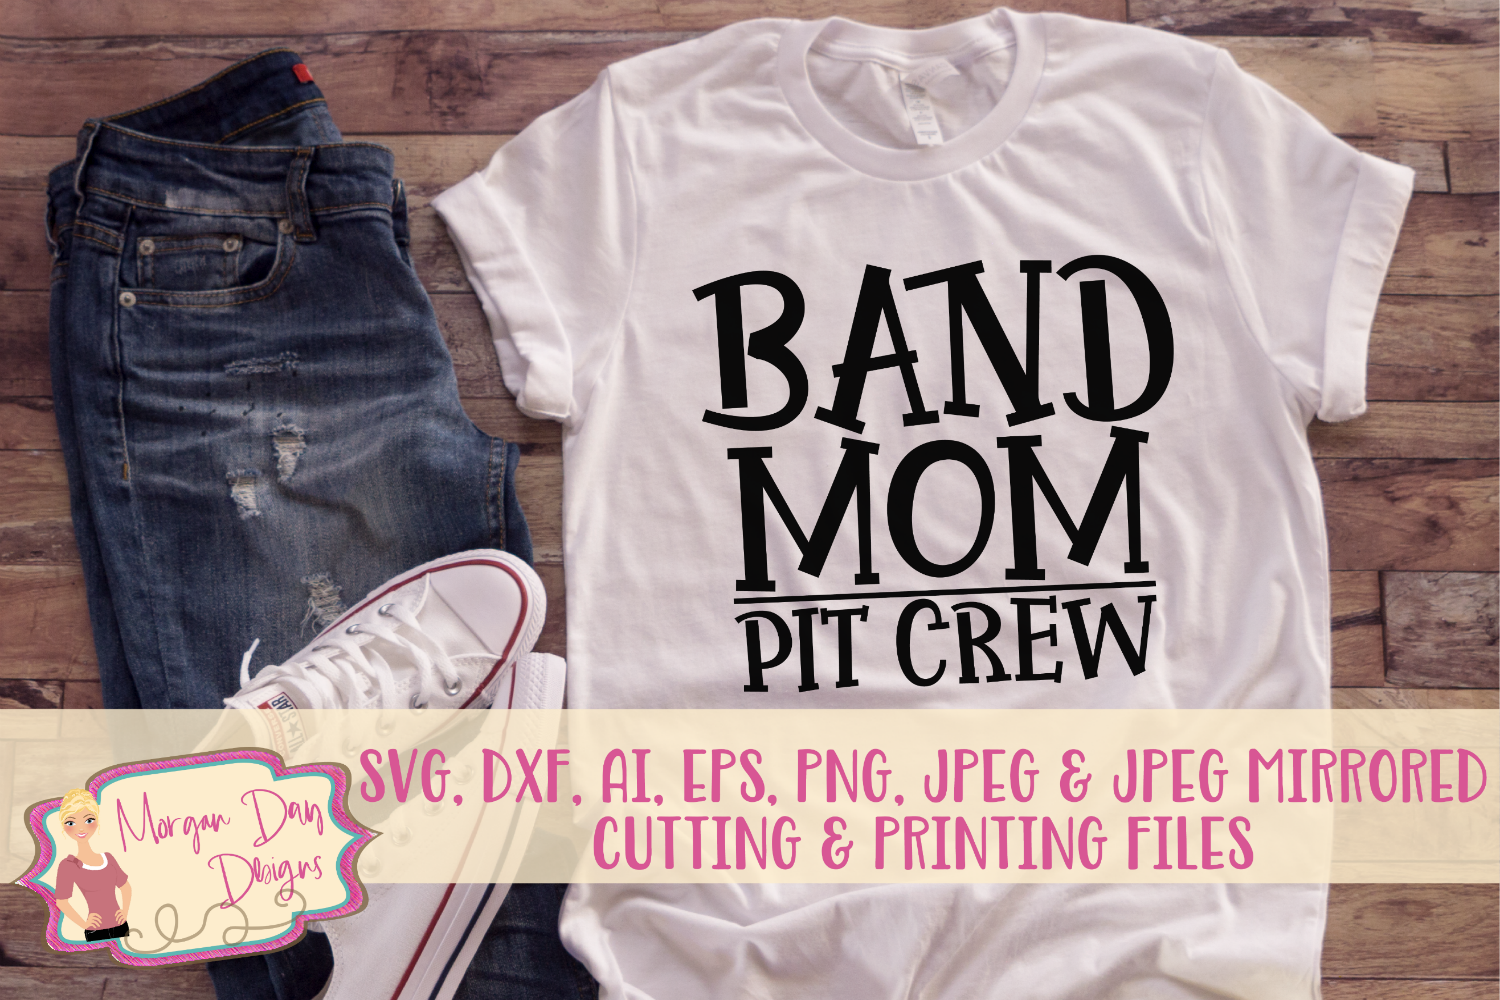 Band Mom Pit Crew SVG, DXF, AI, EPS, PNG, JPEG example image 1